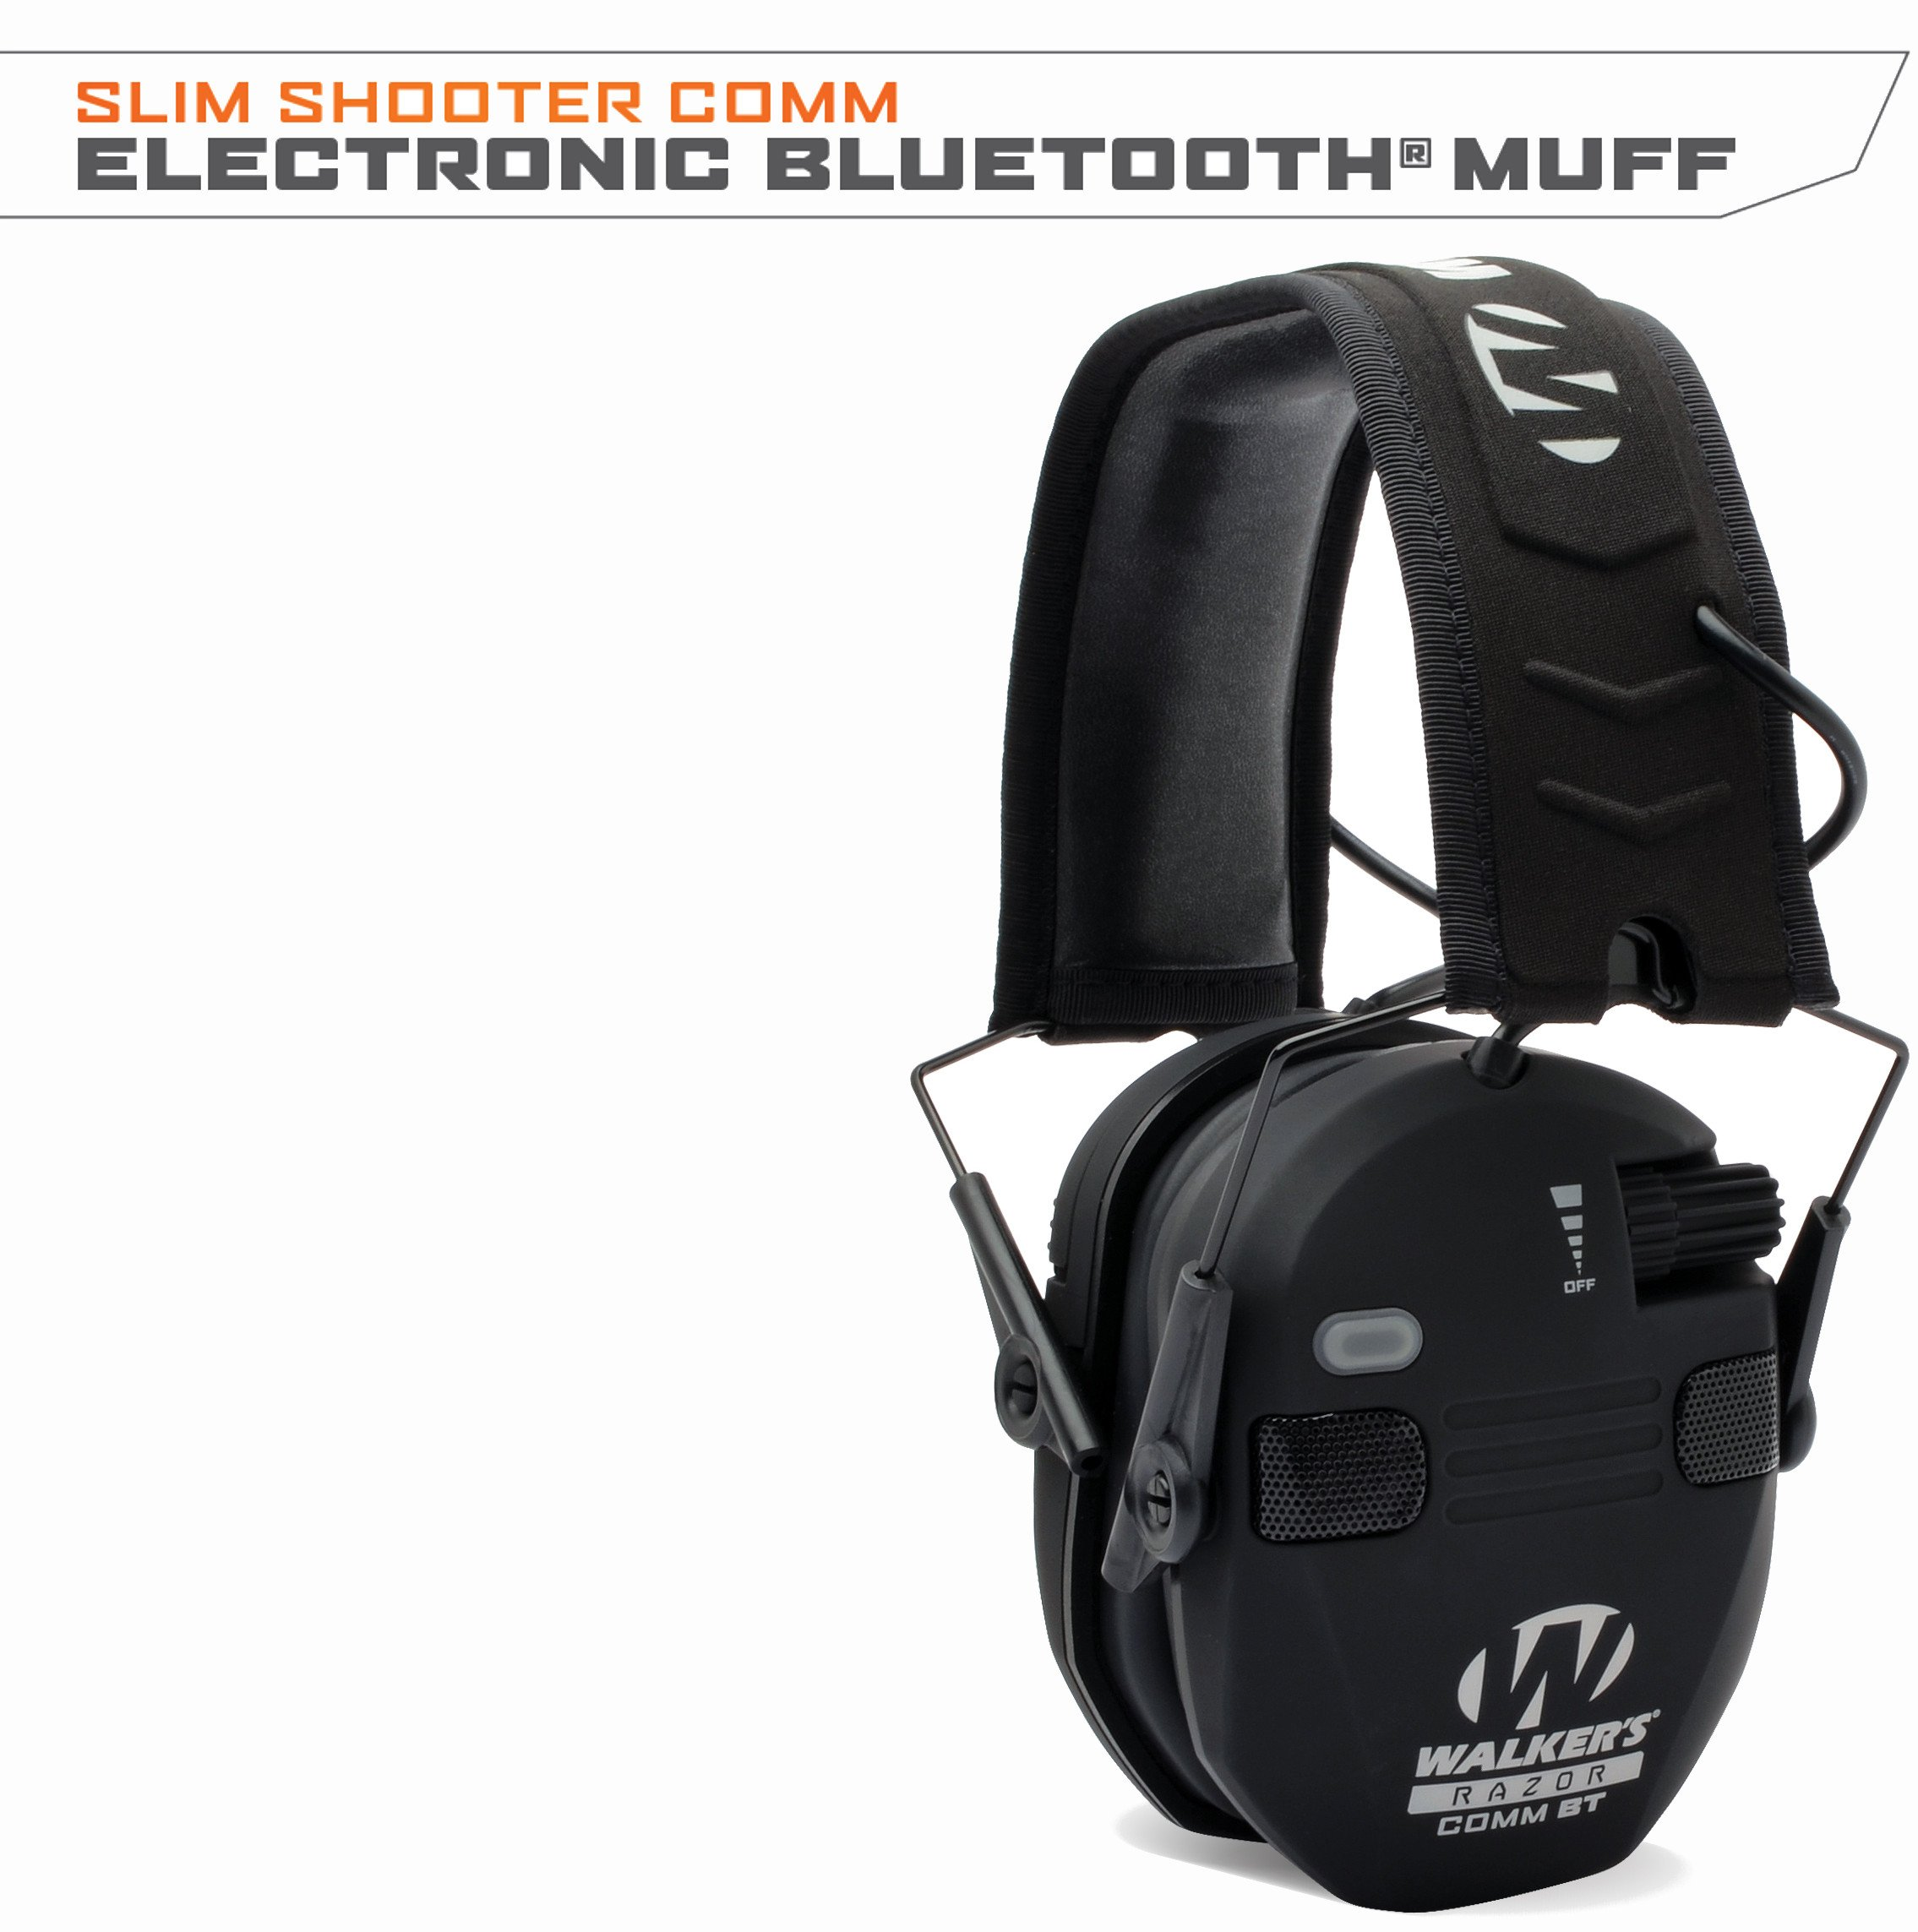 Walker's Razor Quad Electronic Bluetooth Muff-Black by Walker's Game Ear